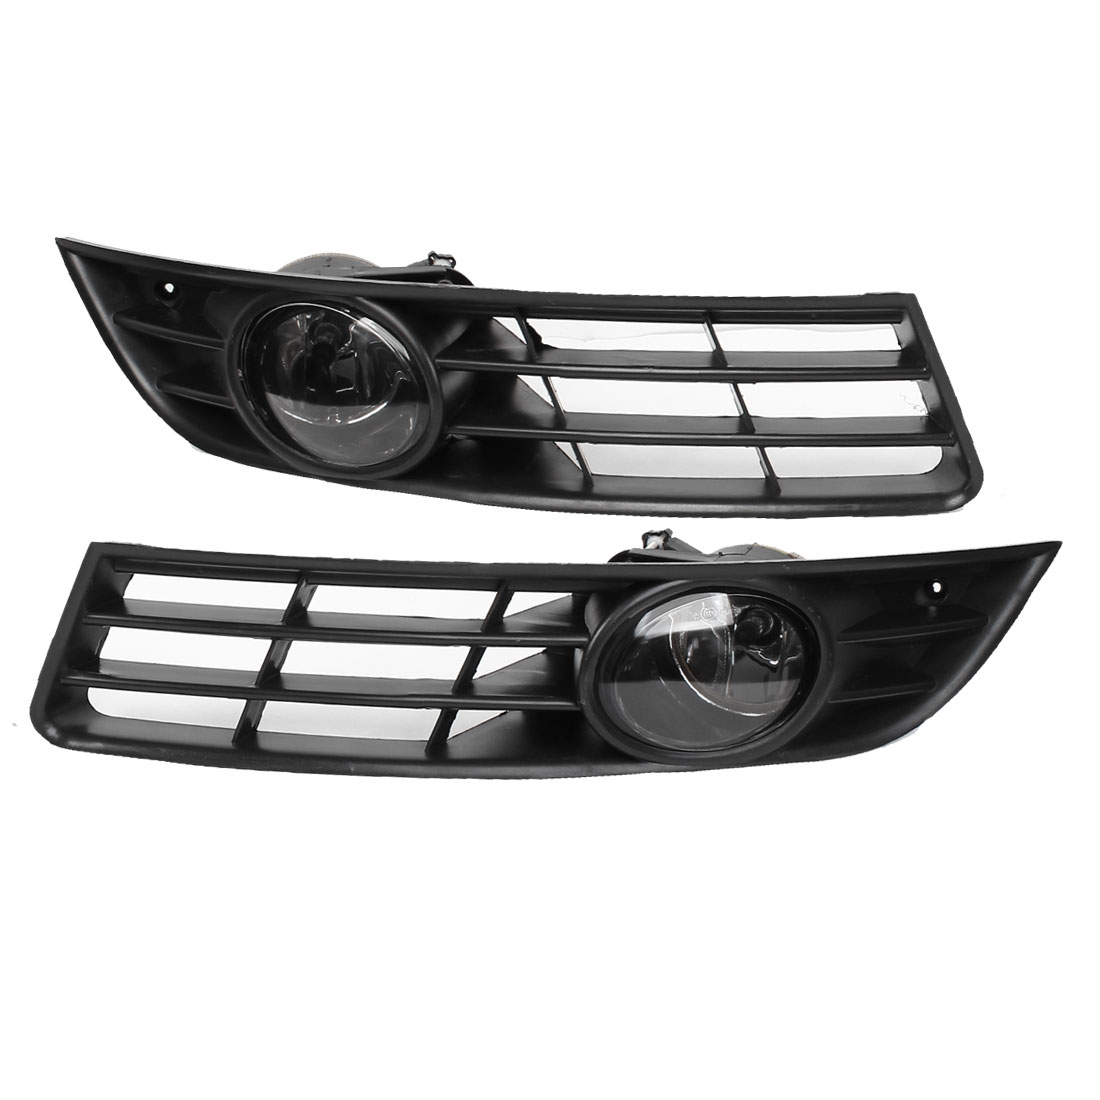 2 Pcs Front Bumper Grille Fog Light Insert Driver for 2006-2010 Passat